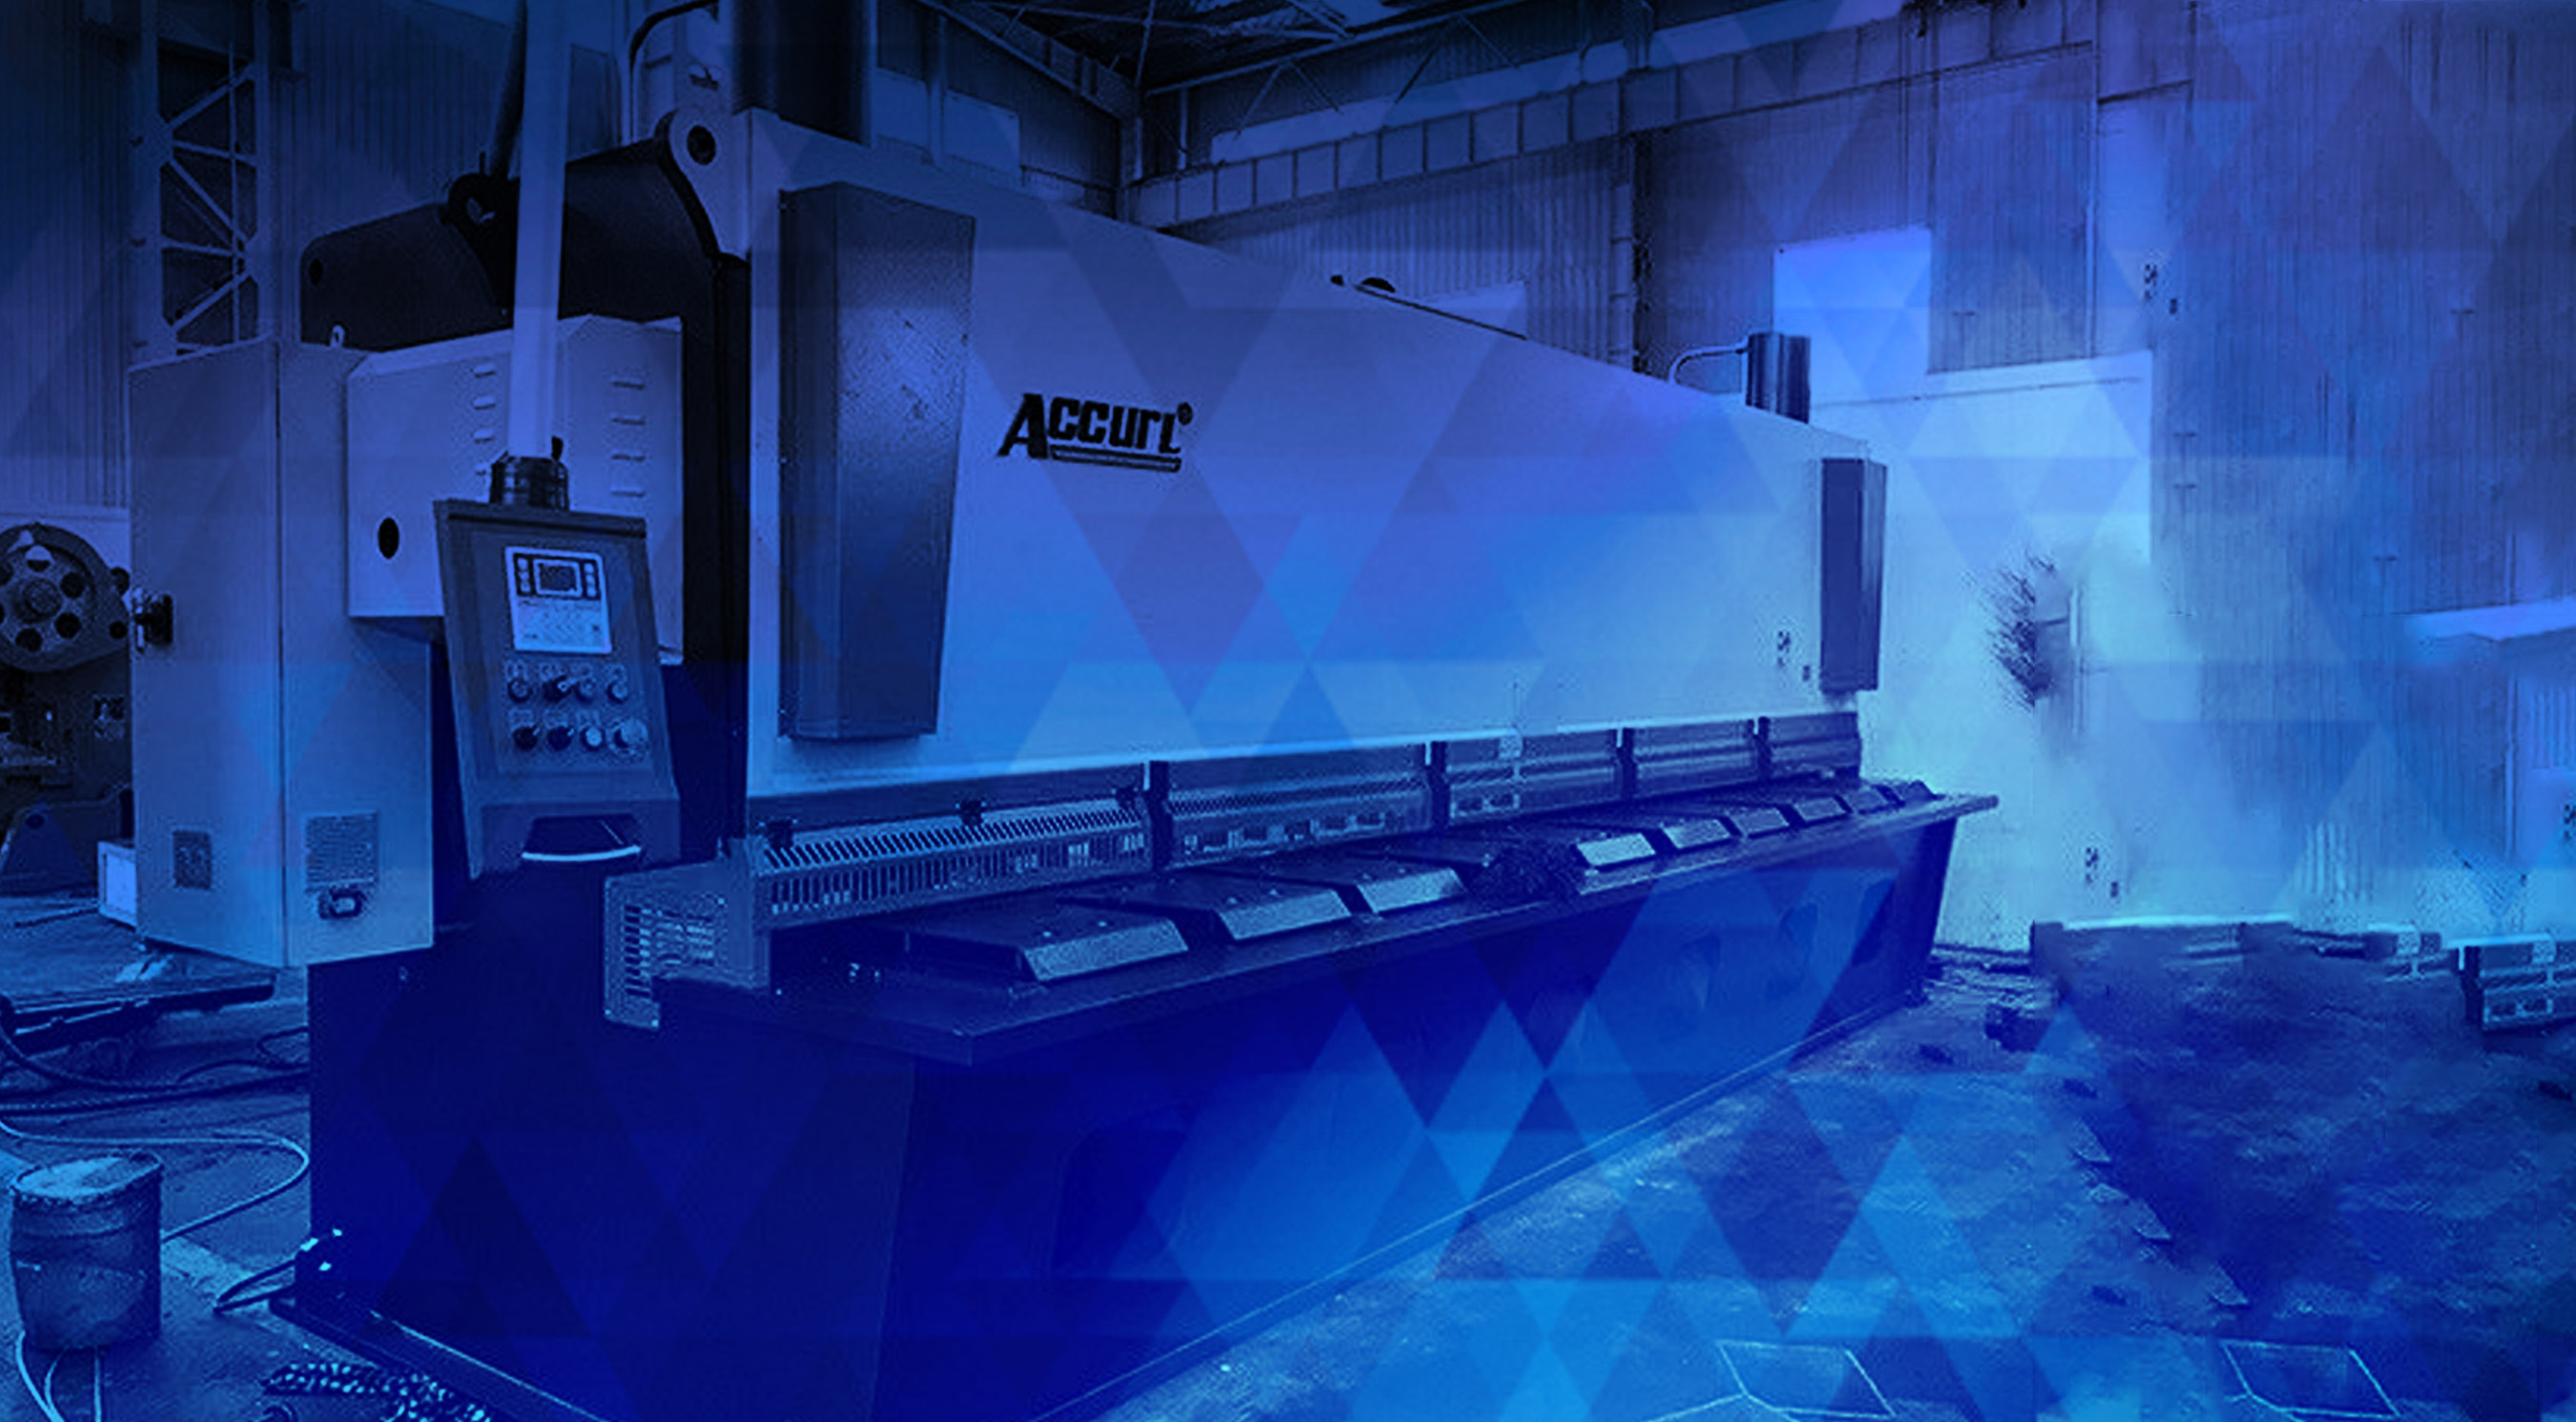 BoerBoel Lasercutting and Sheet Metal Services - Guillotine